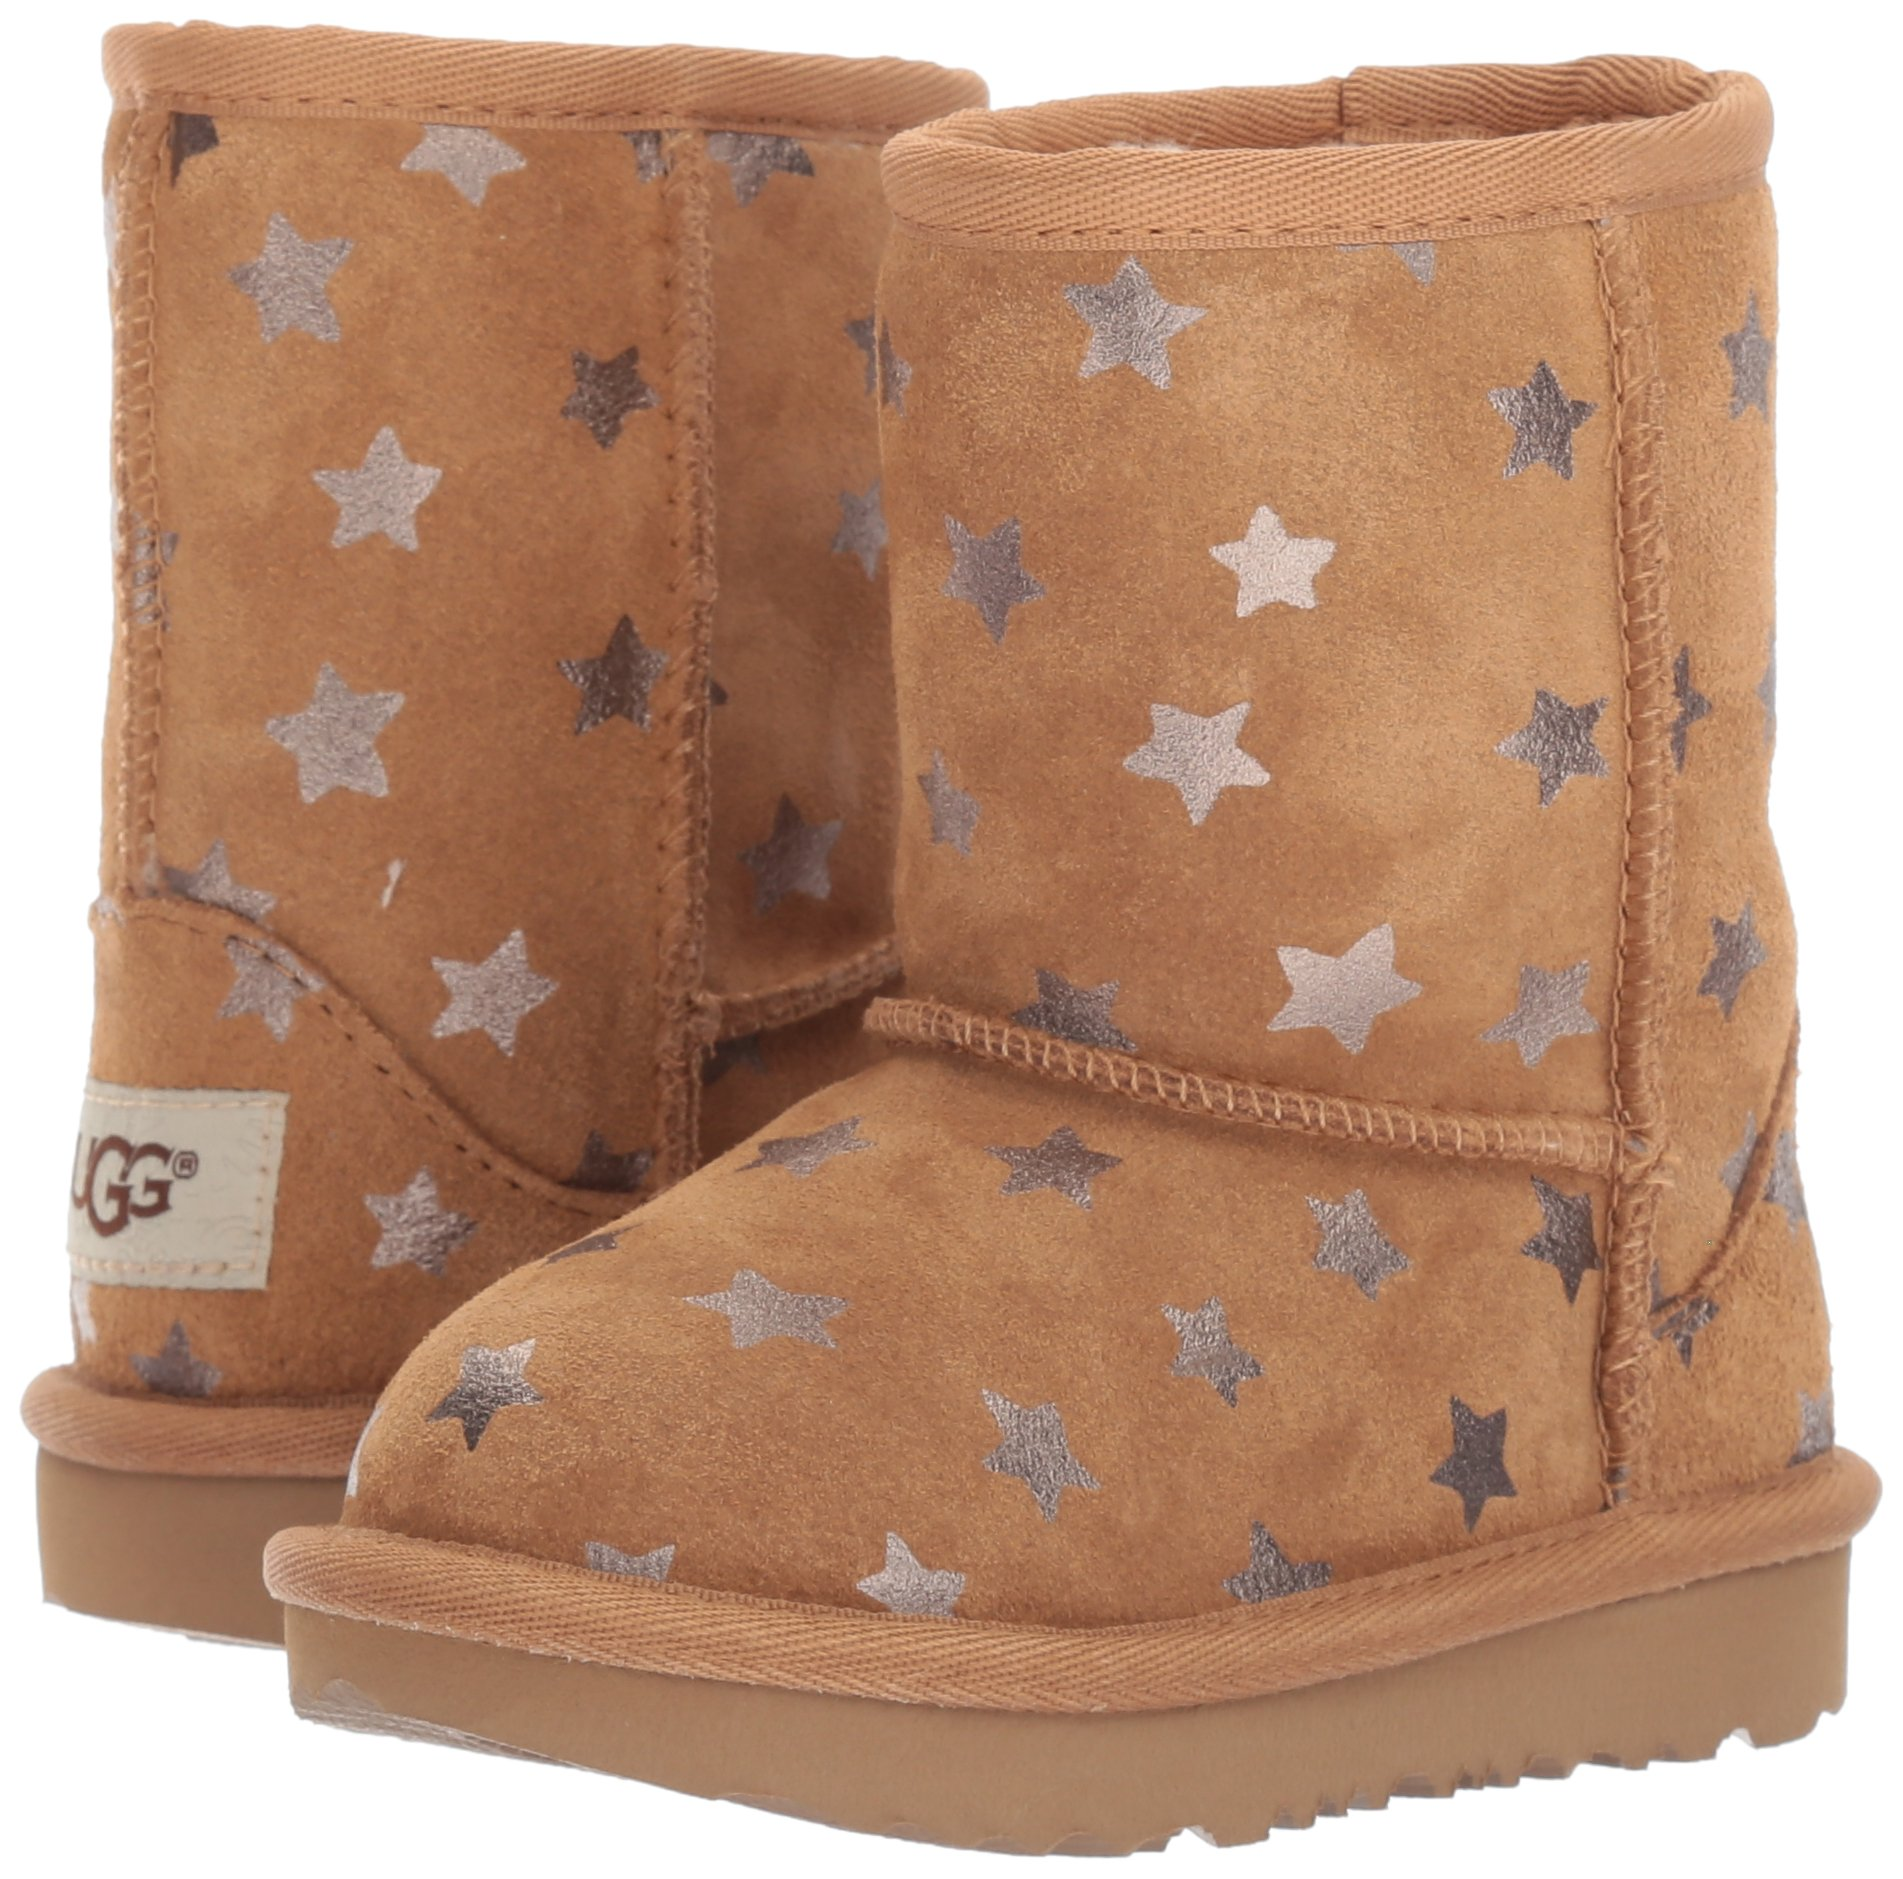 UGG Girls T Classic Short II Stars Pull-On Boot, Chestnut, 7 M US Toddler by UGG (Image #6)